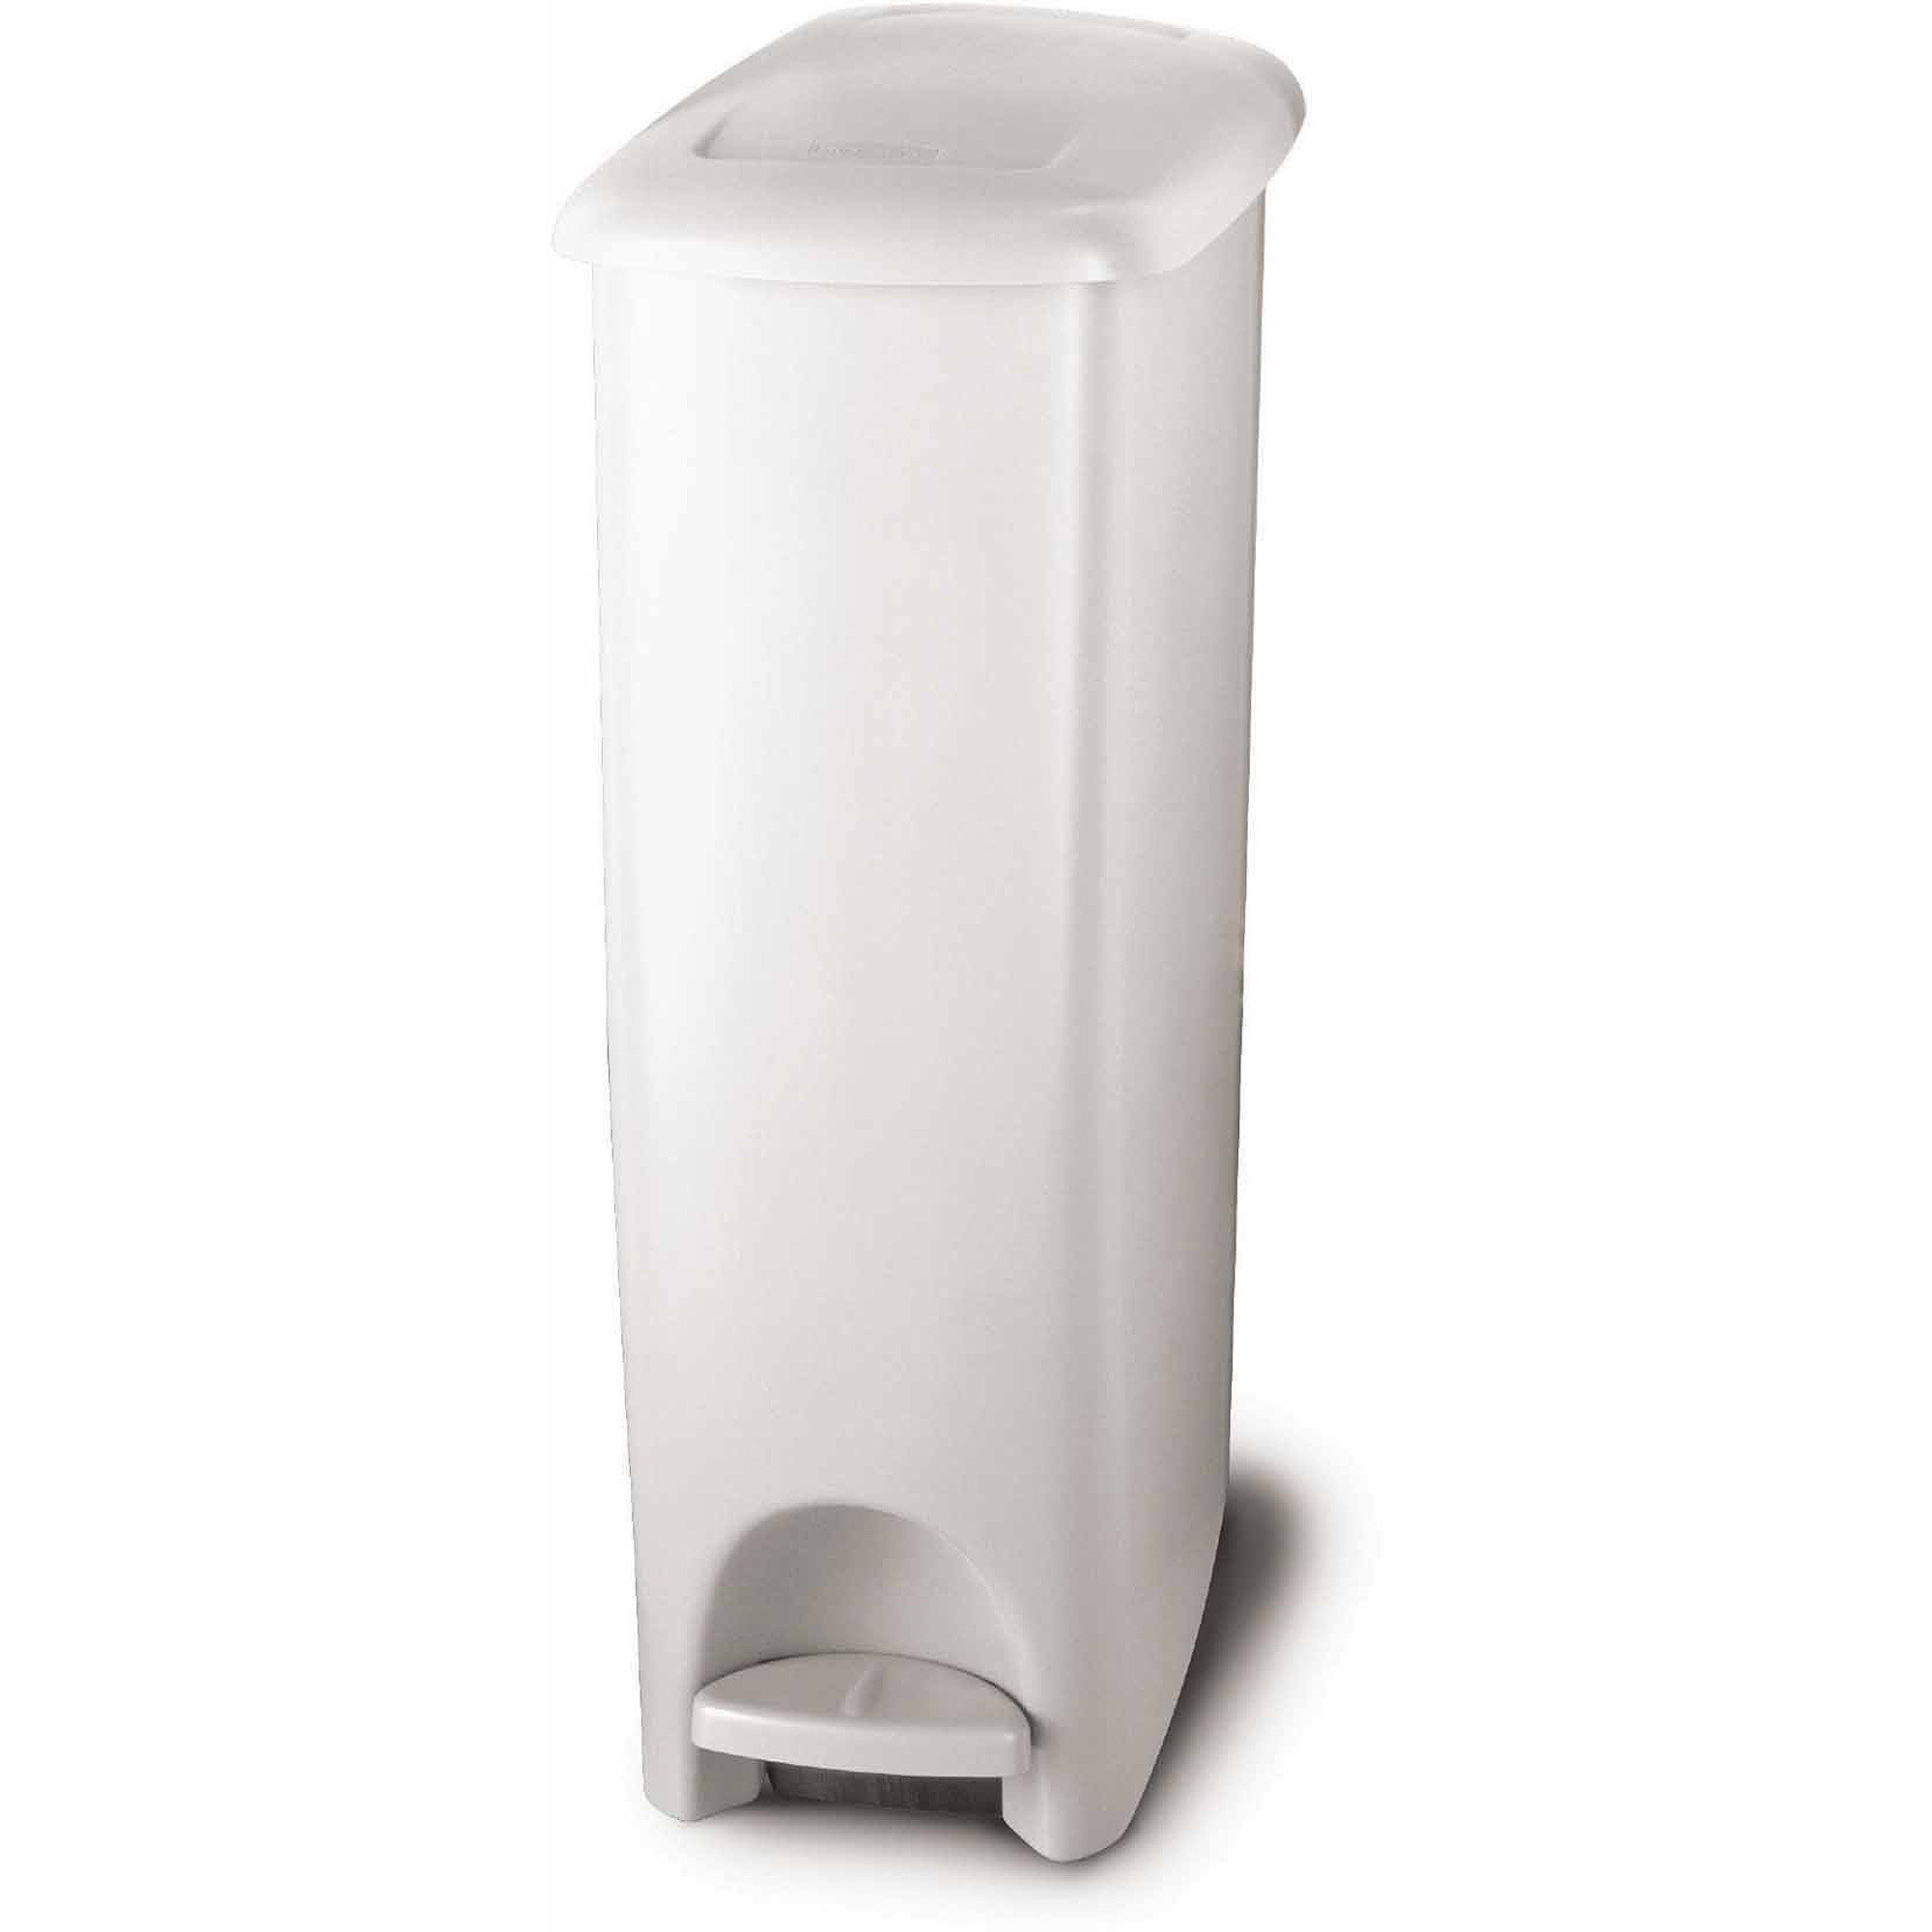 slim kitchen trash can farmhouse chairs step on fit easily wipe clean plastic